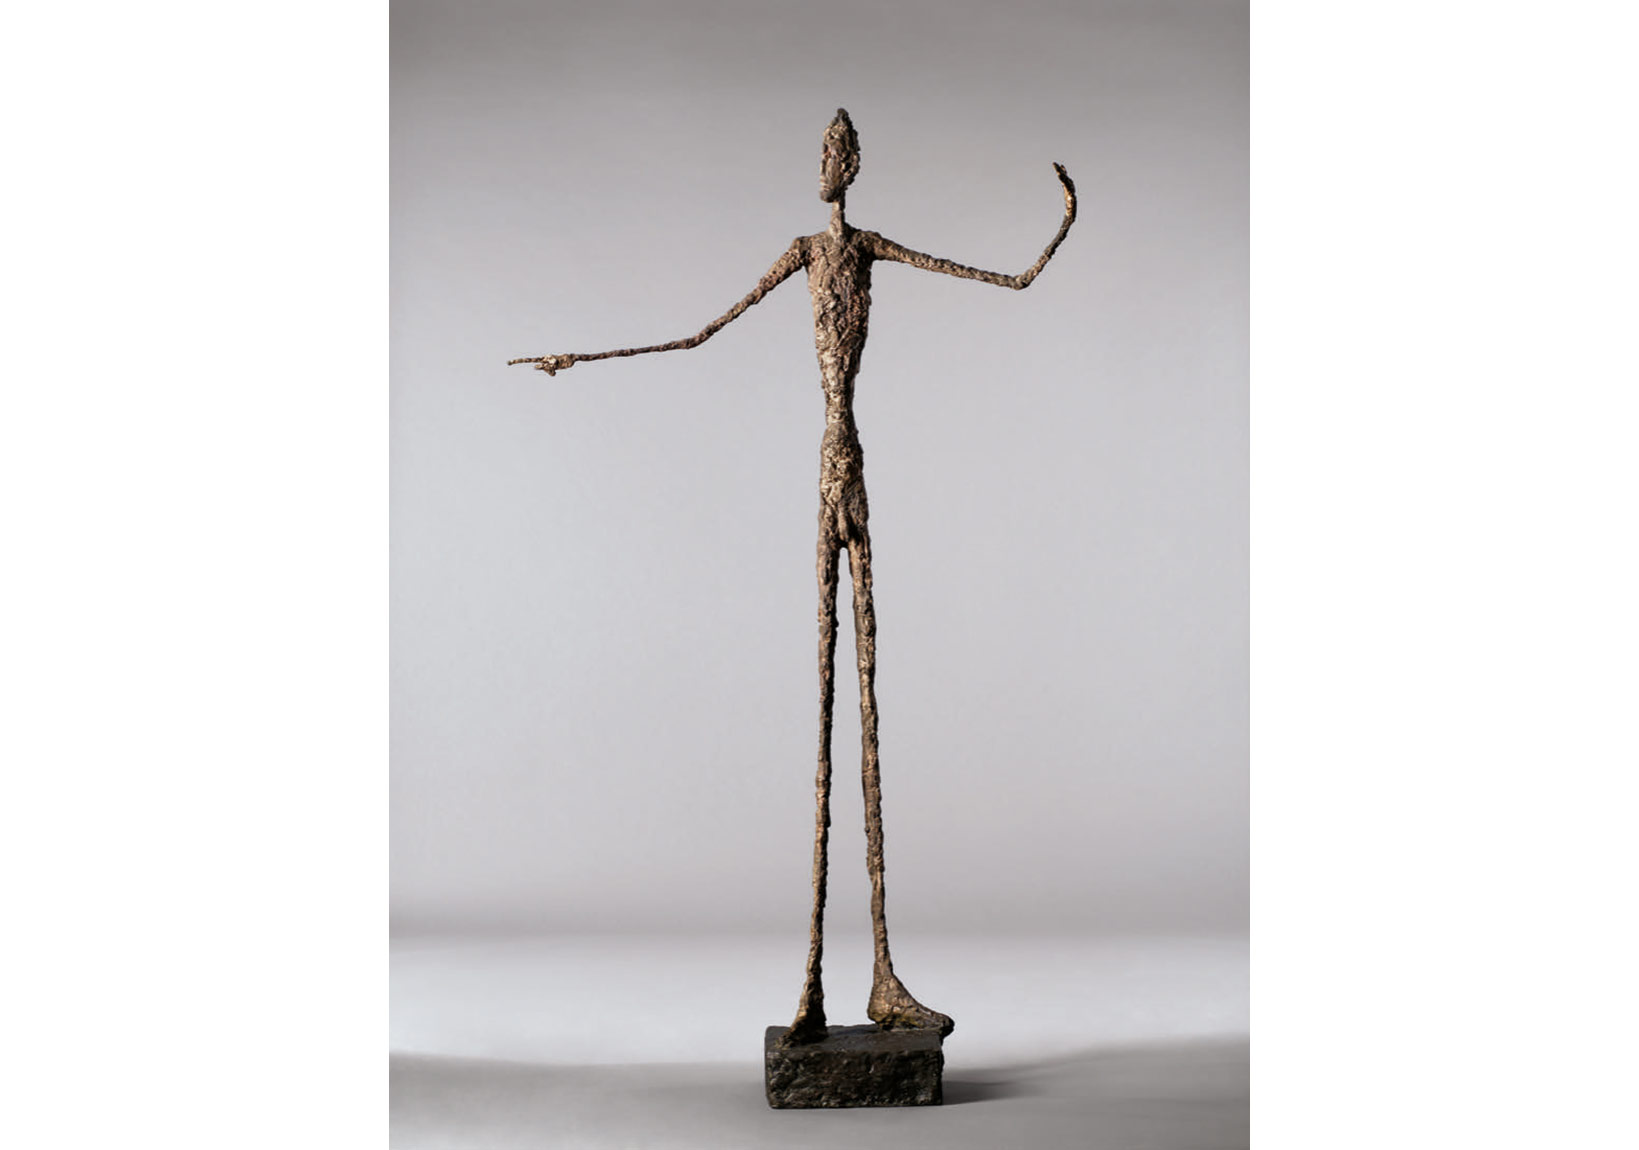 Alberto Giacometti, L'homme au doigt, conceived in 1947. Price Realized: $141,285,000. Courtesy of Christie's Images ltd. 2015.